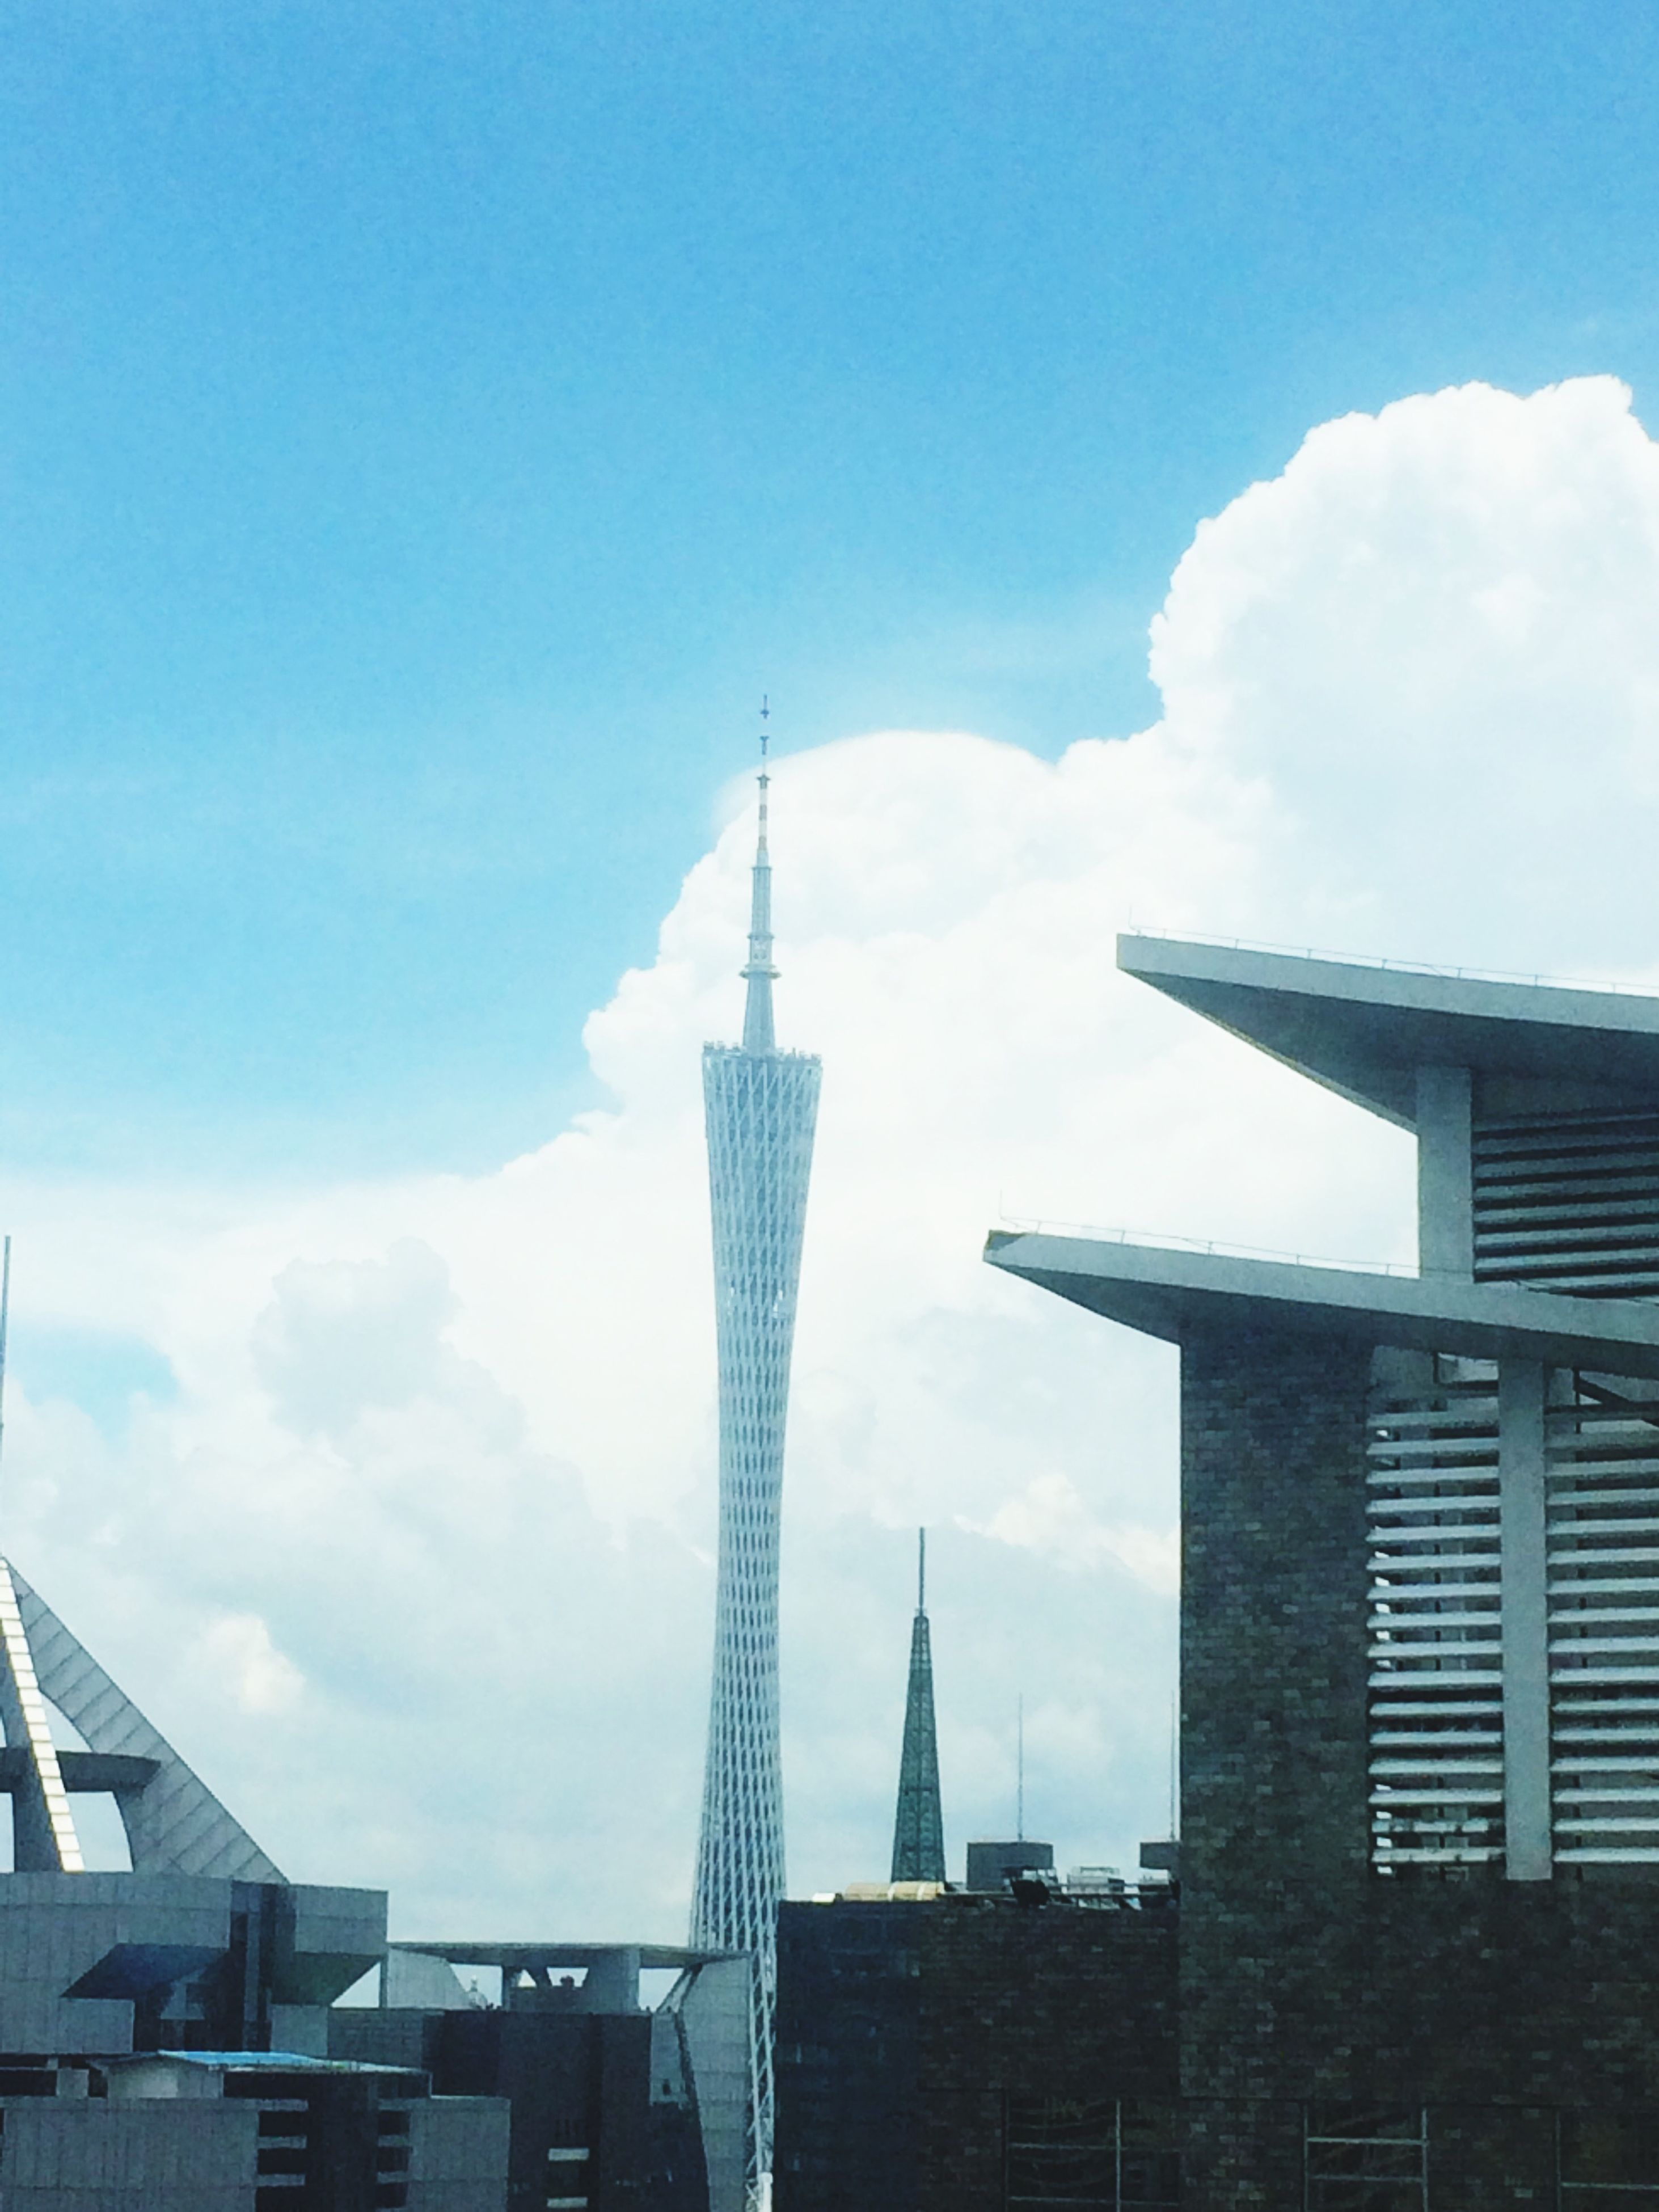 architecture, building exterior, built structure, tall - high, tower, city, skyscraper, low angle view, sky, spire, travel destinations, capital cities, modern, famous place, communications tower, international landmark, cloud - sky, office building, tourism, day